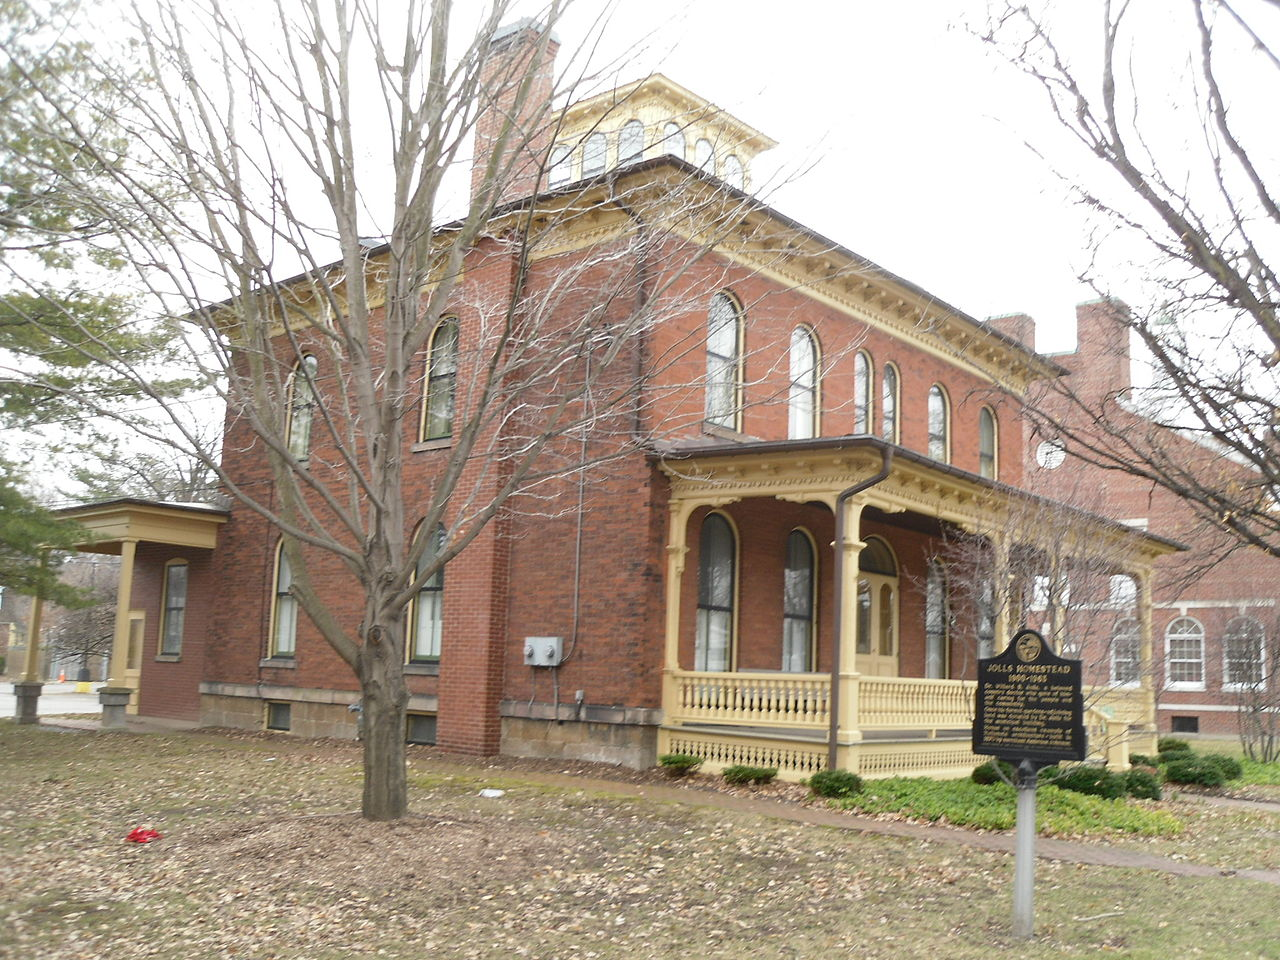 The Orchard Park Historical Society is located at this 1870 historic home.